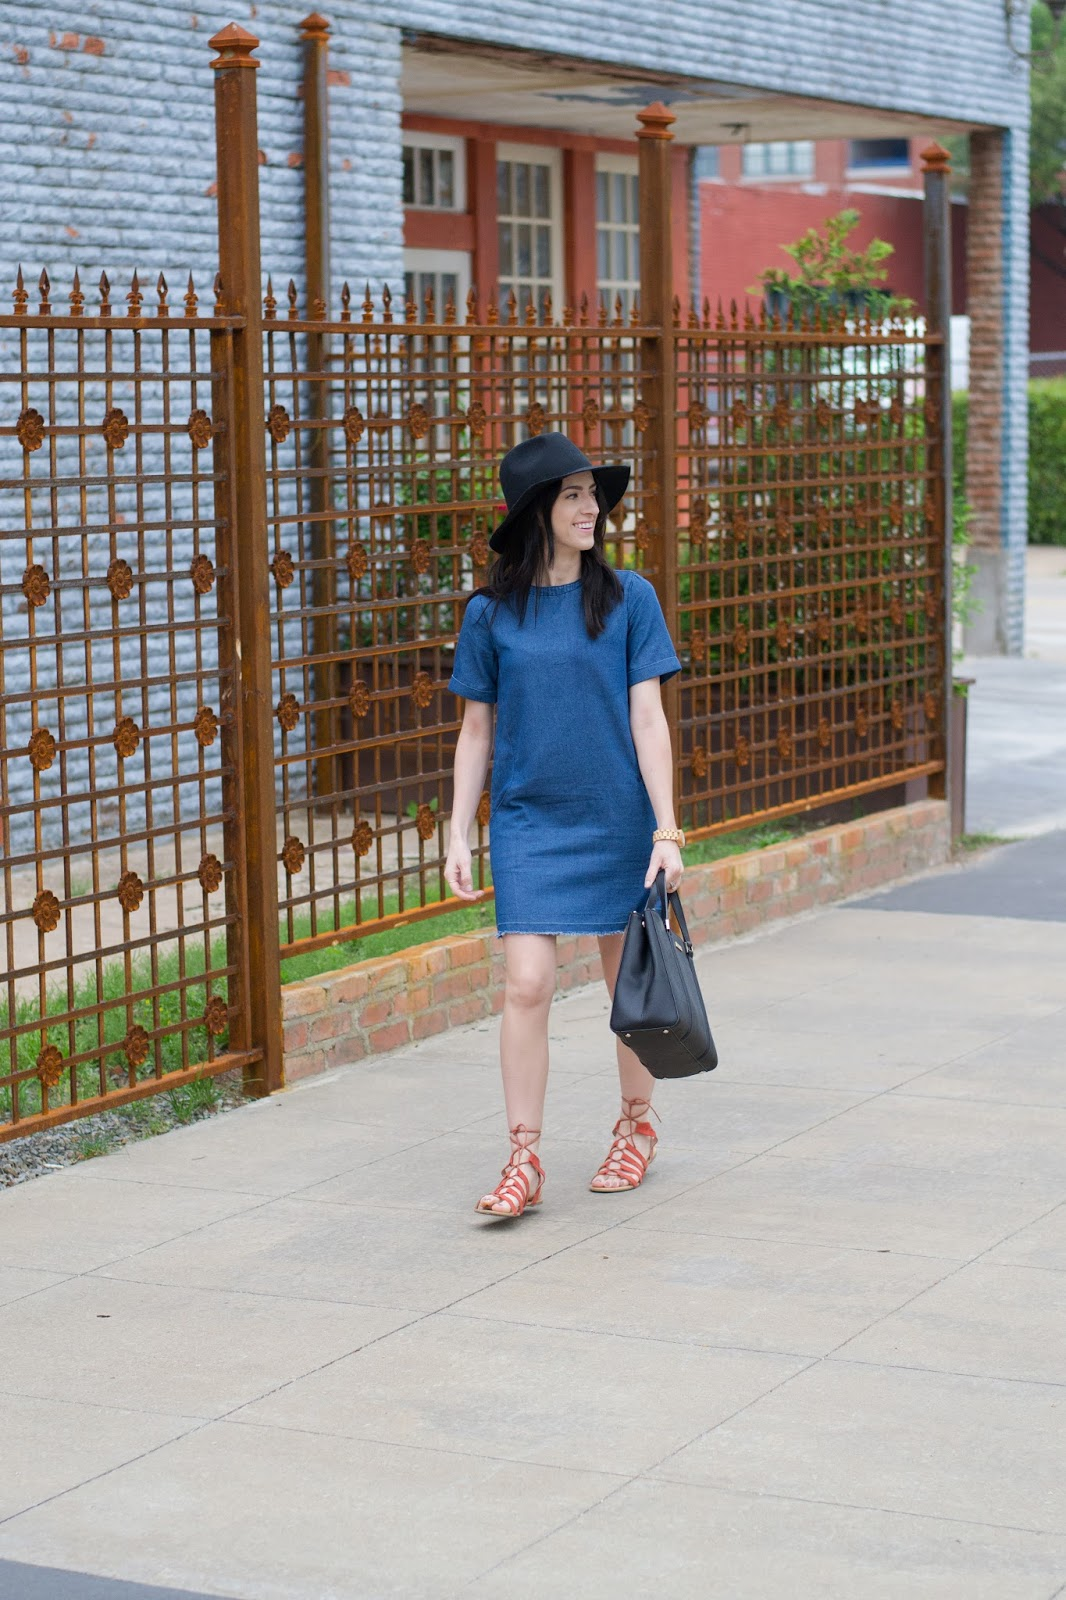 Easy weekend style in denim dress, black wool hat and lace up sandals